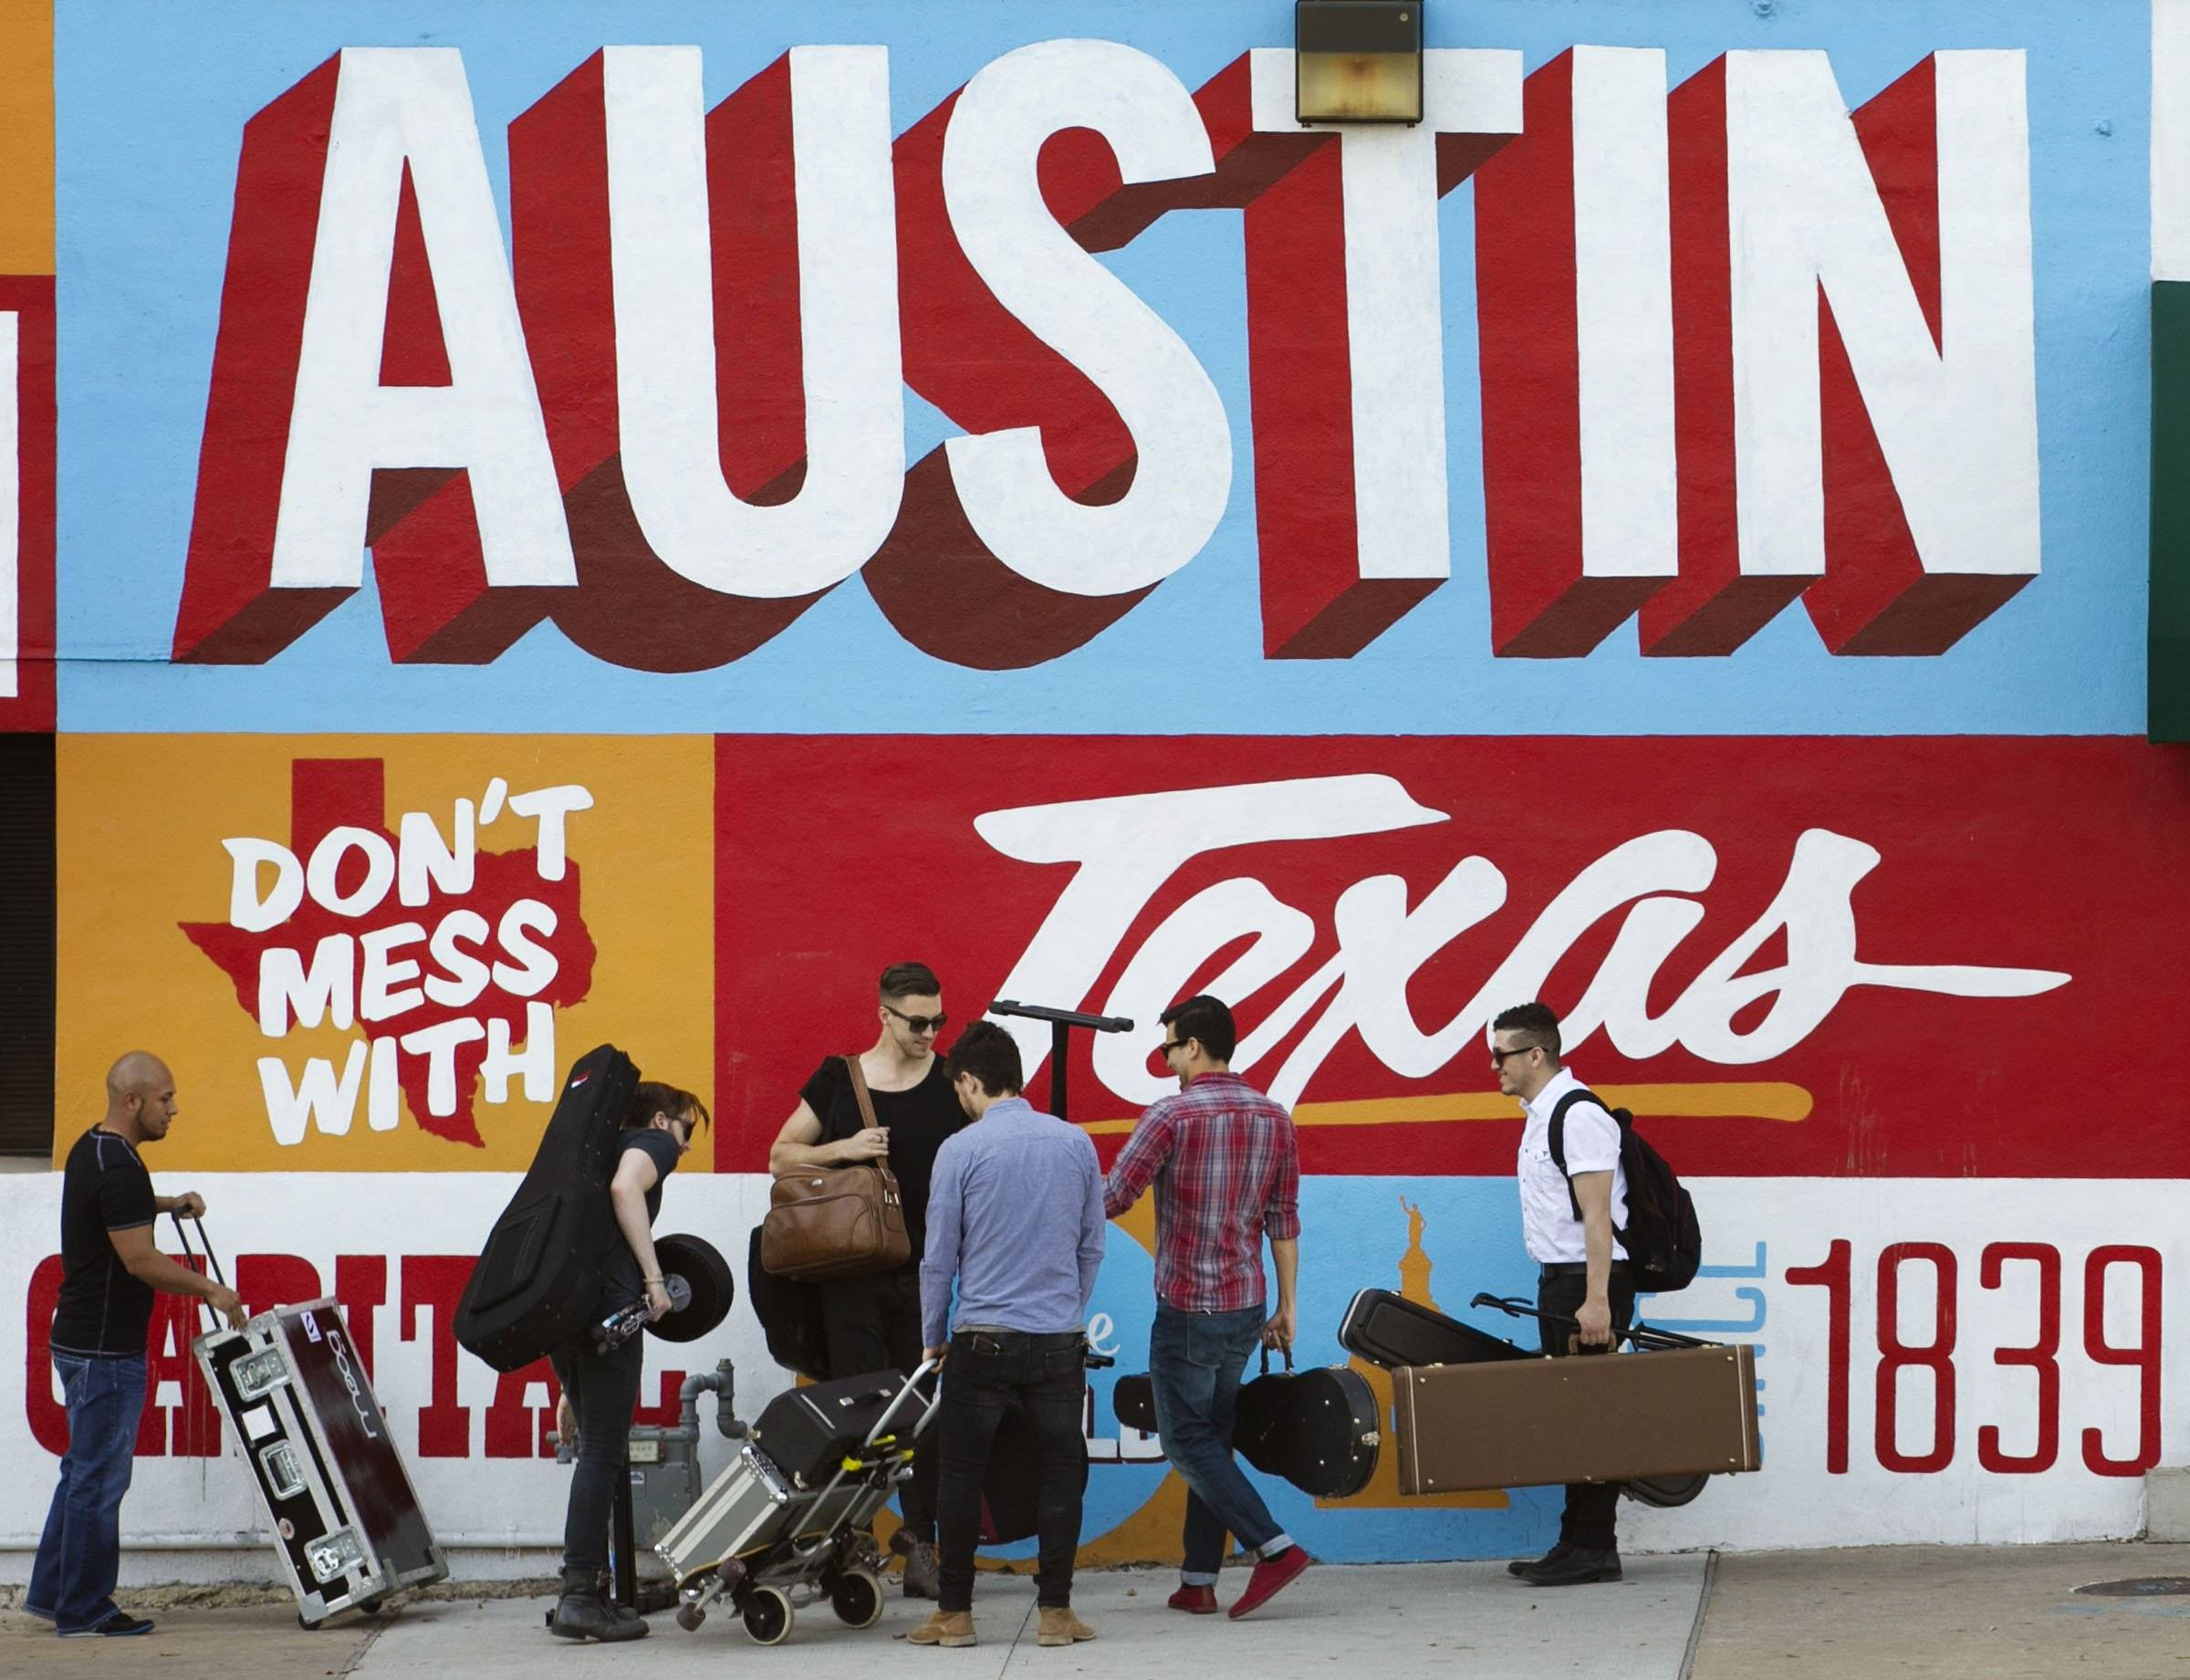 iTunes is putting its stamp on South by Southwest, piggybacking on the annual event hosted by the city of Austin, Texas, with its own music festival.